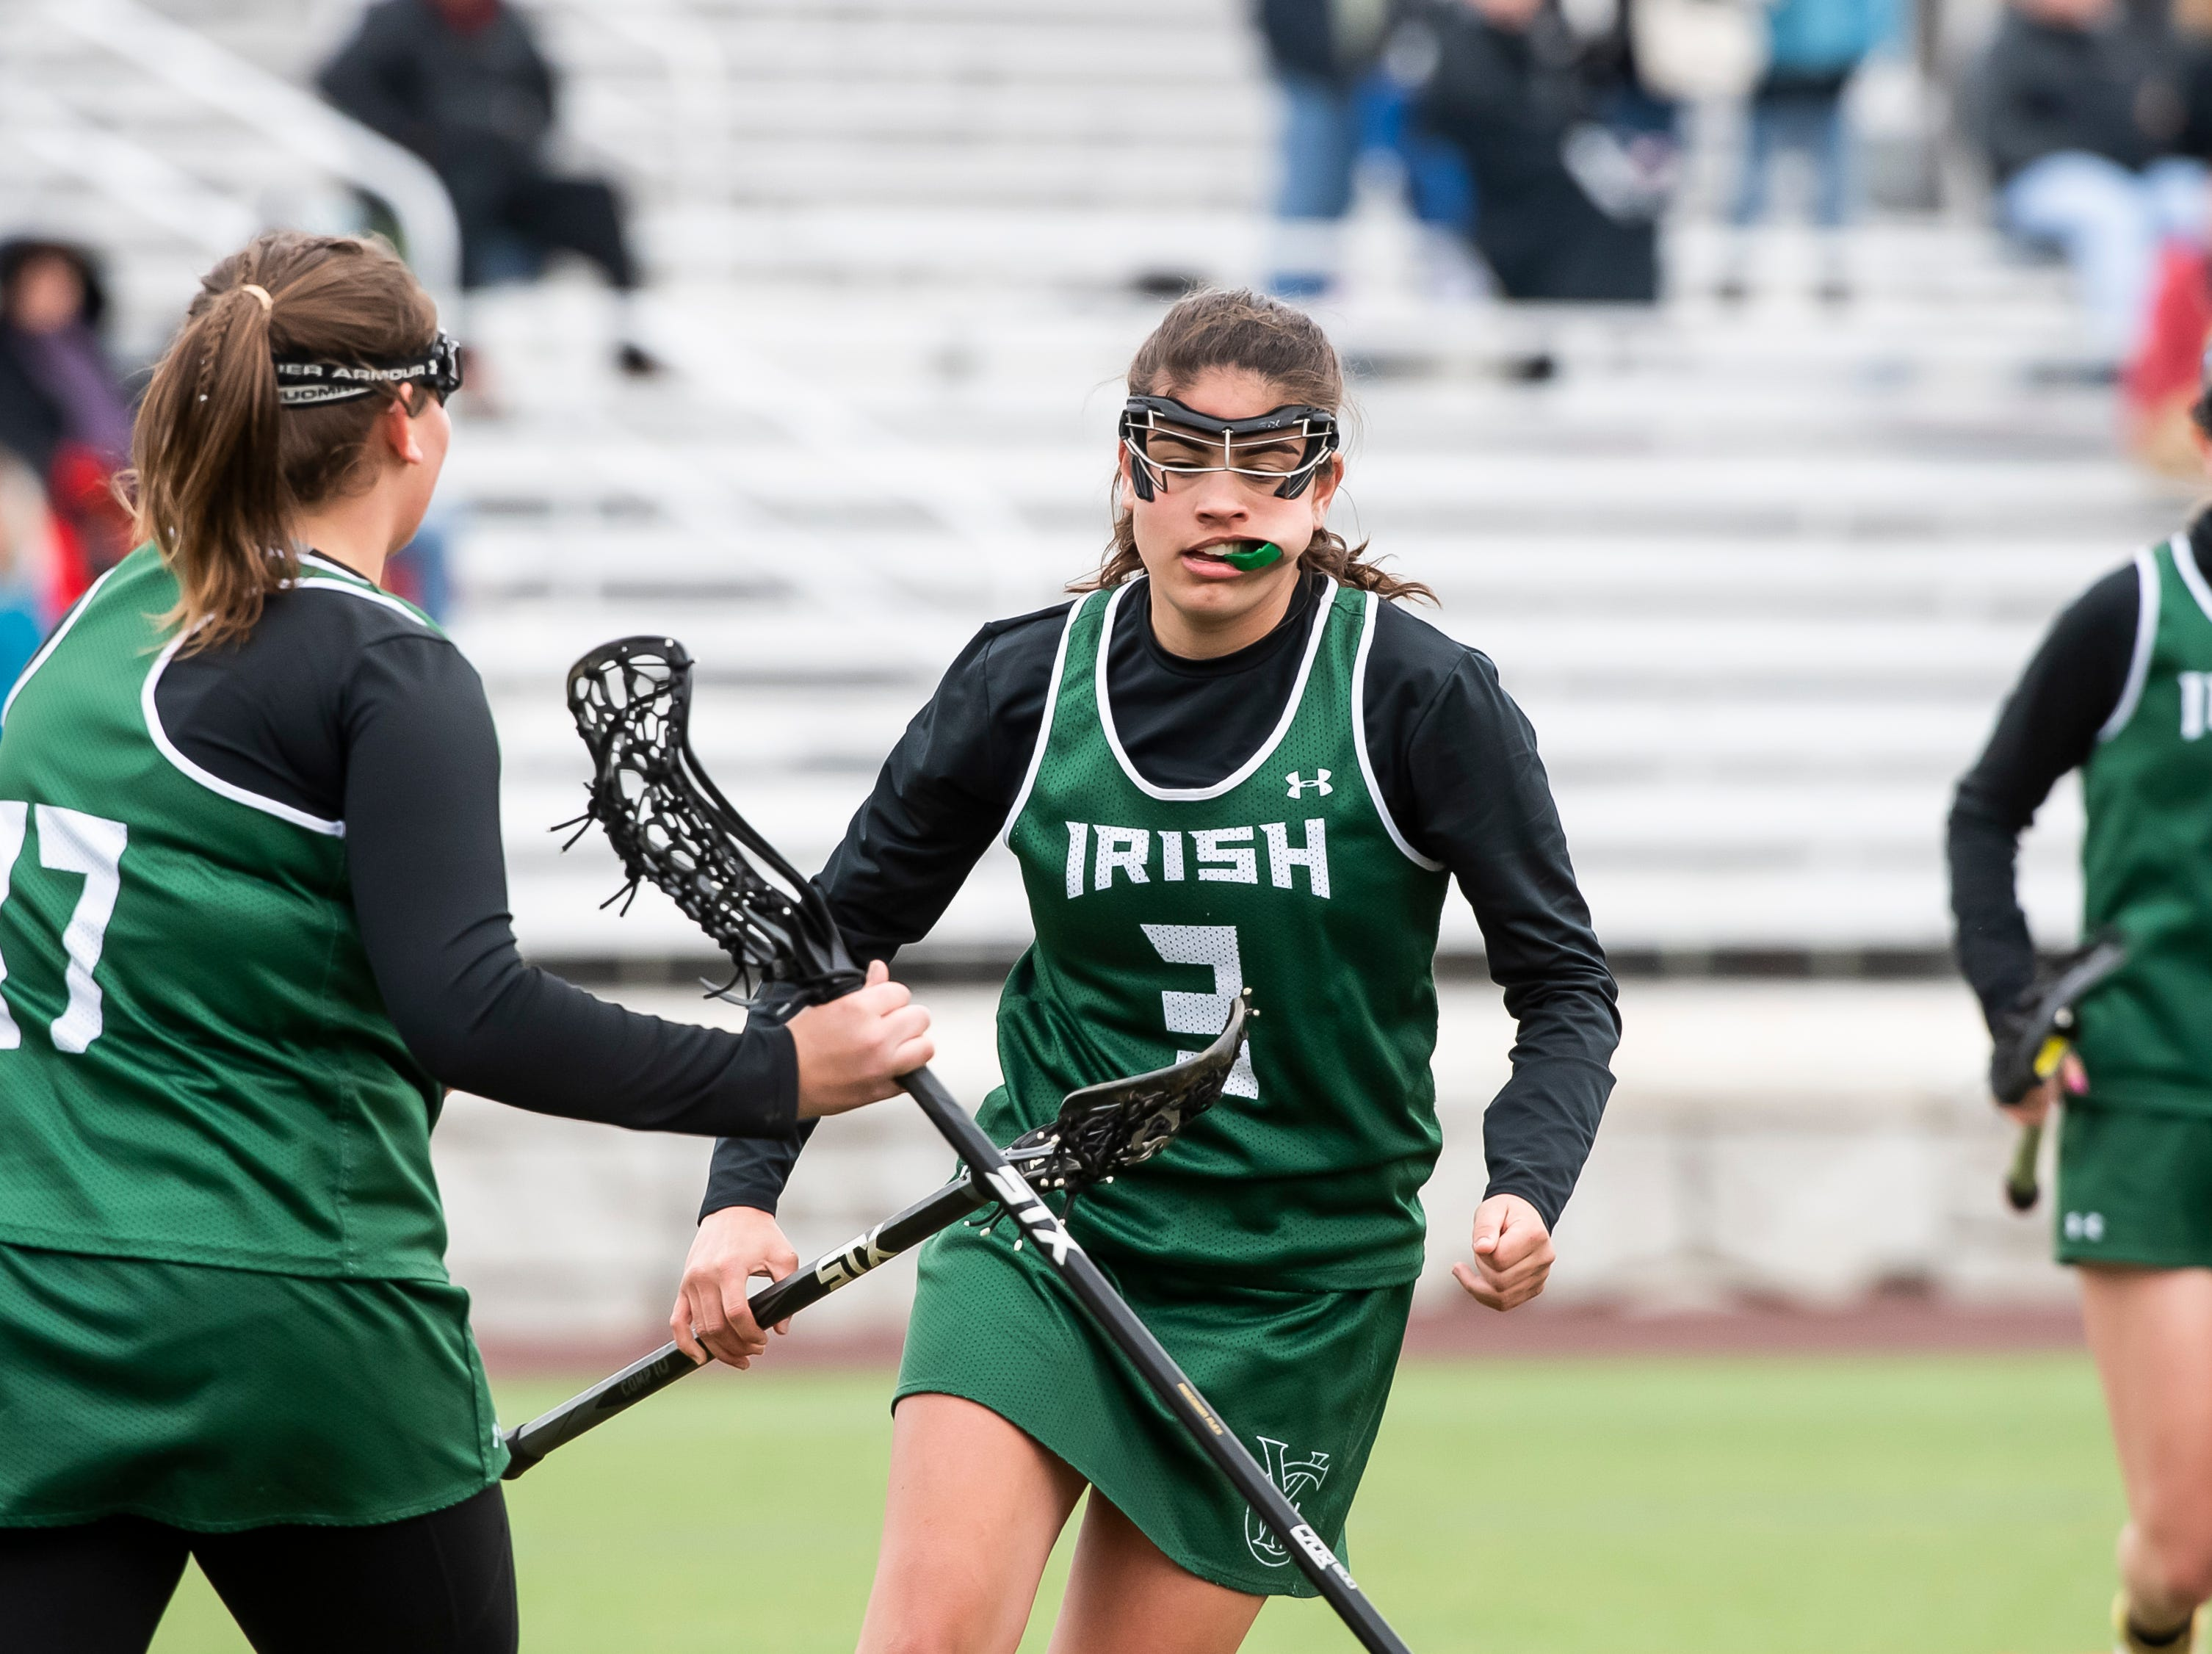 York Catholic's Shannon Staples (3) taps sticks with Ella Linthicum (37) after scoring a goal during a YAIAA lacrosse game against South Western on Tuesday, April 2, 2019. Staples had two goals as York Catholic won 19-7 and improved to 5-0.